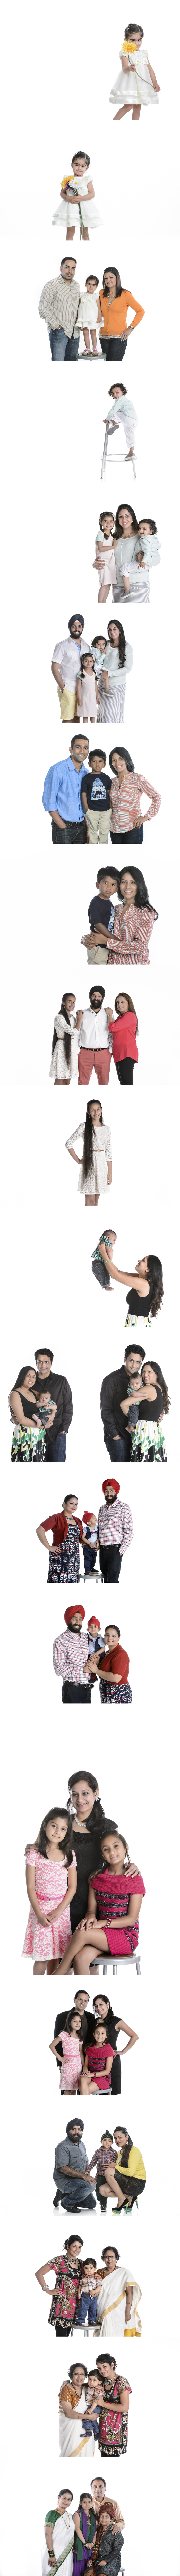 Mothers' Day Pictures